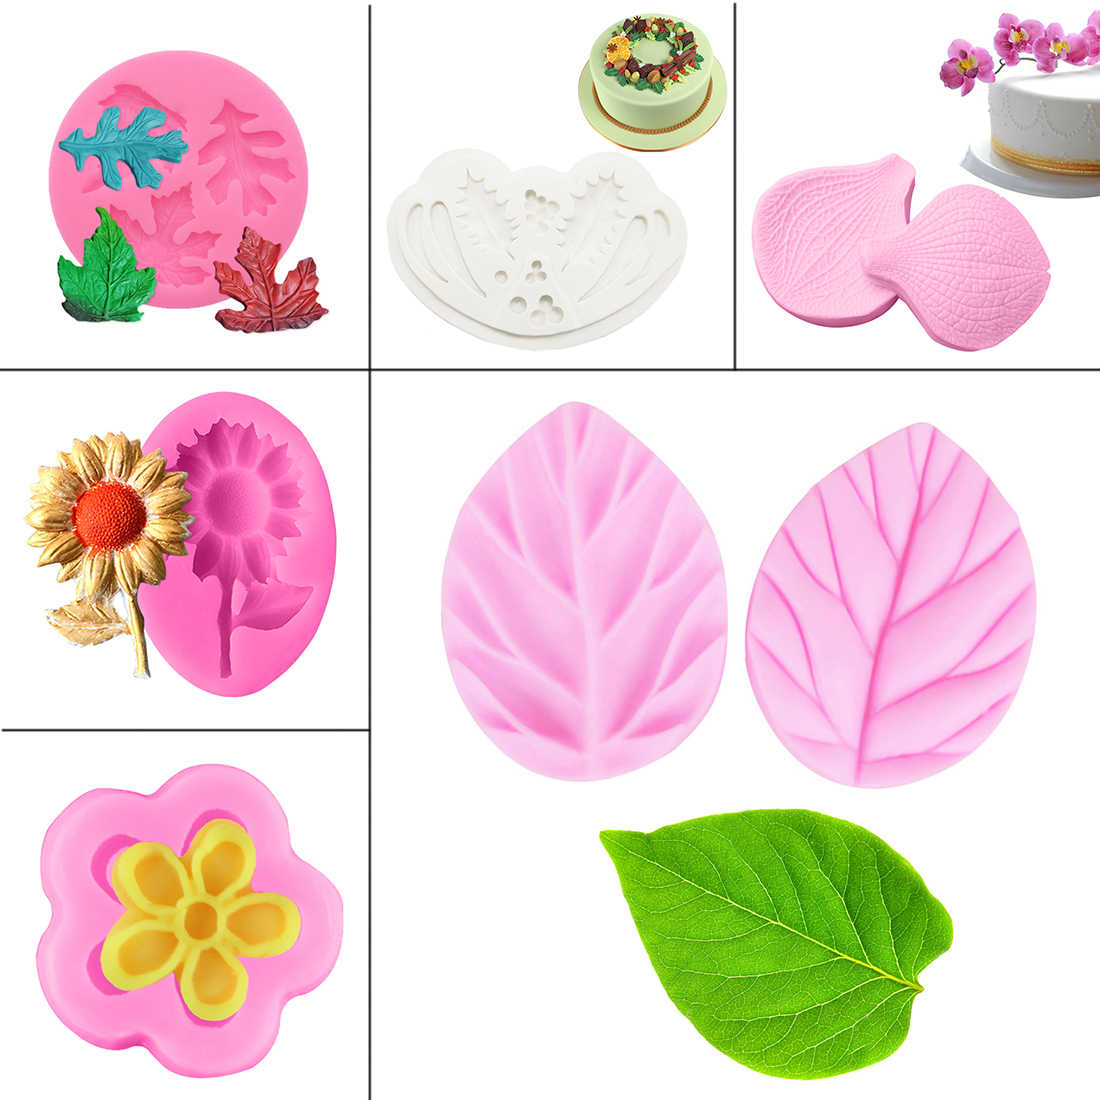 Soap Mould 1PC Flowers/Leaves Fondant Molds Cake Decorating Tools Chocolate Soap Mold Kitchen Cake Stencils